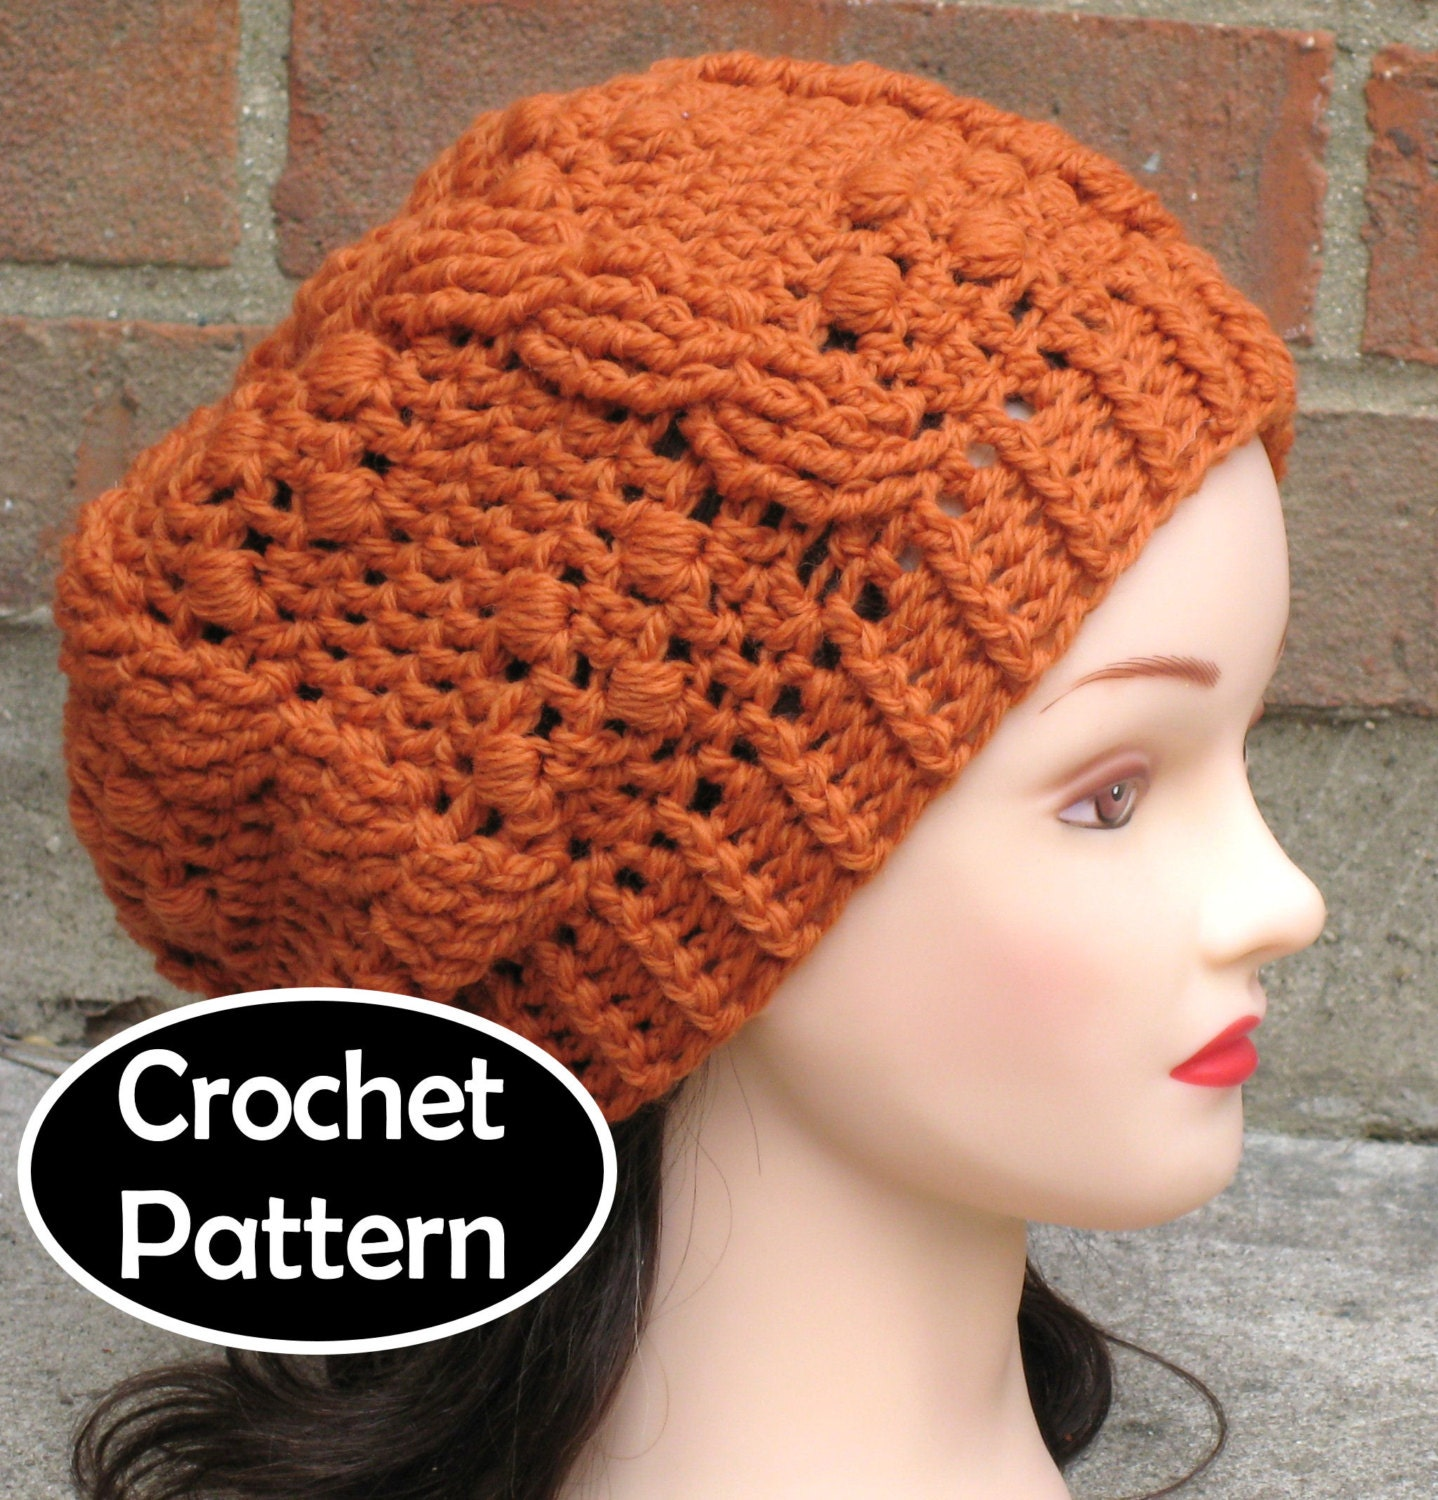 Crochet Hat Pattern Download : CROCHET HAT PATTERN Pdf Instant Download Giana Cabled Beret